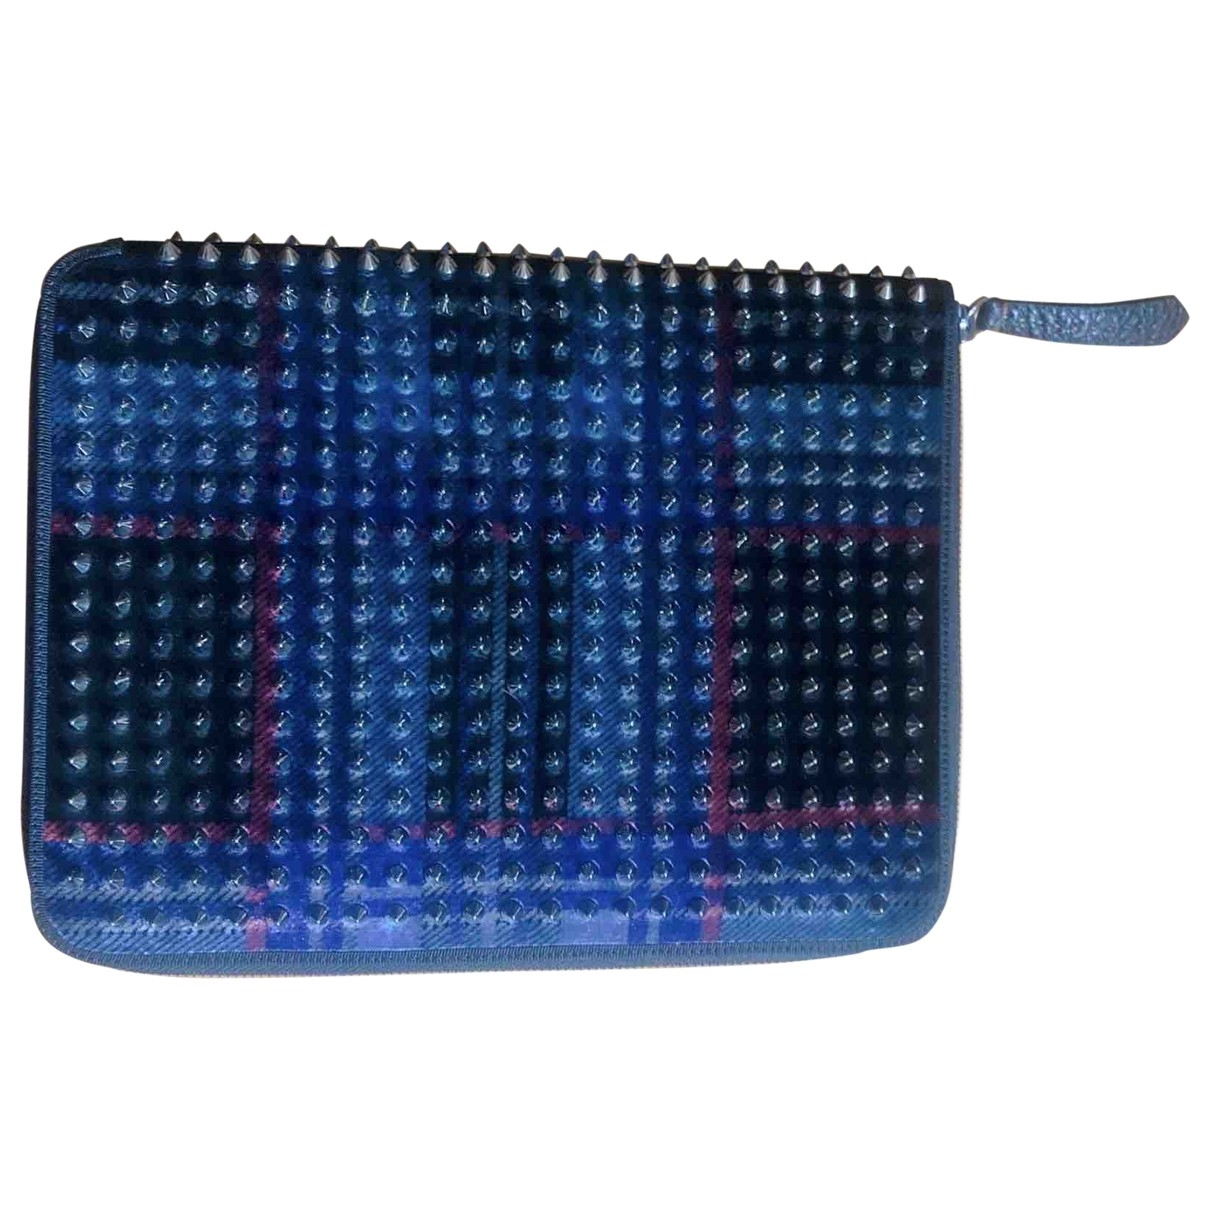 Christian Louboutin \N Multicolour Cloth Clutch bag for Women \N